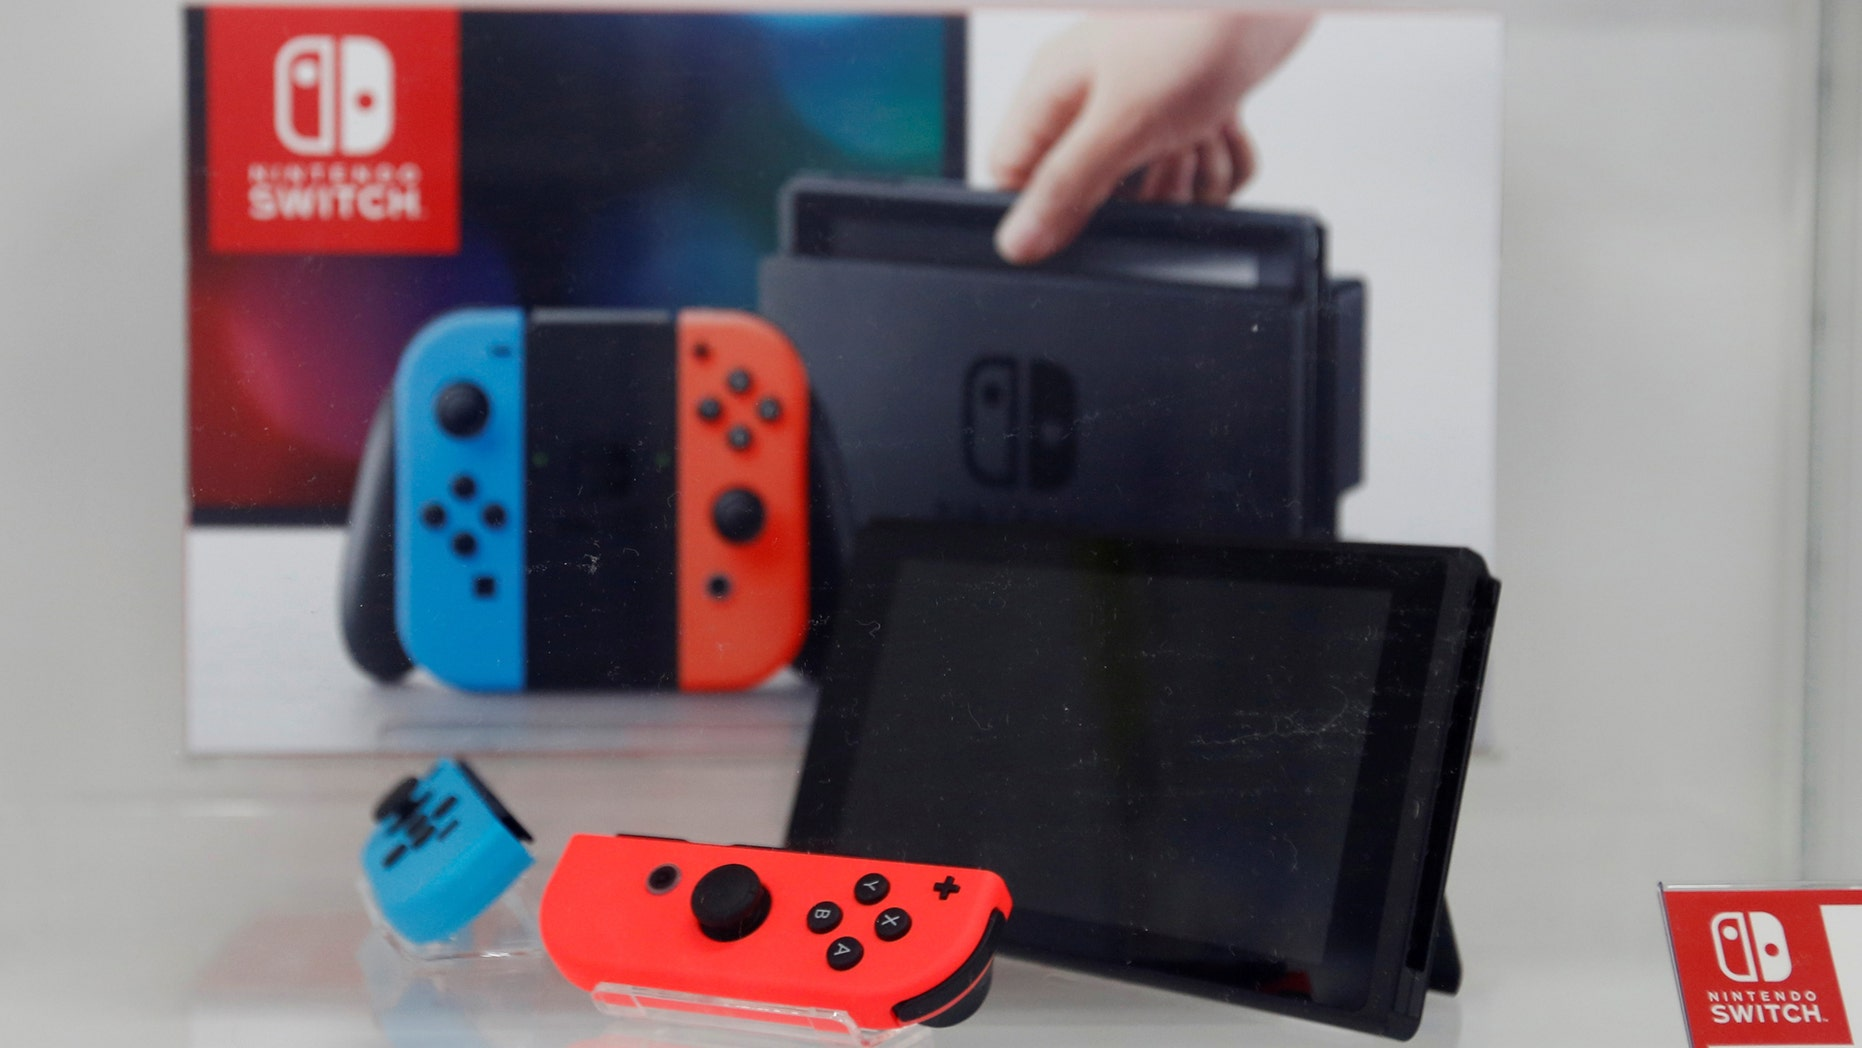 File photo: A Nintendo Switch game console is displayed at an electronics store in Tokyo, Japan March 3, 2017. (REUTERS/Toru Hanai)